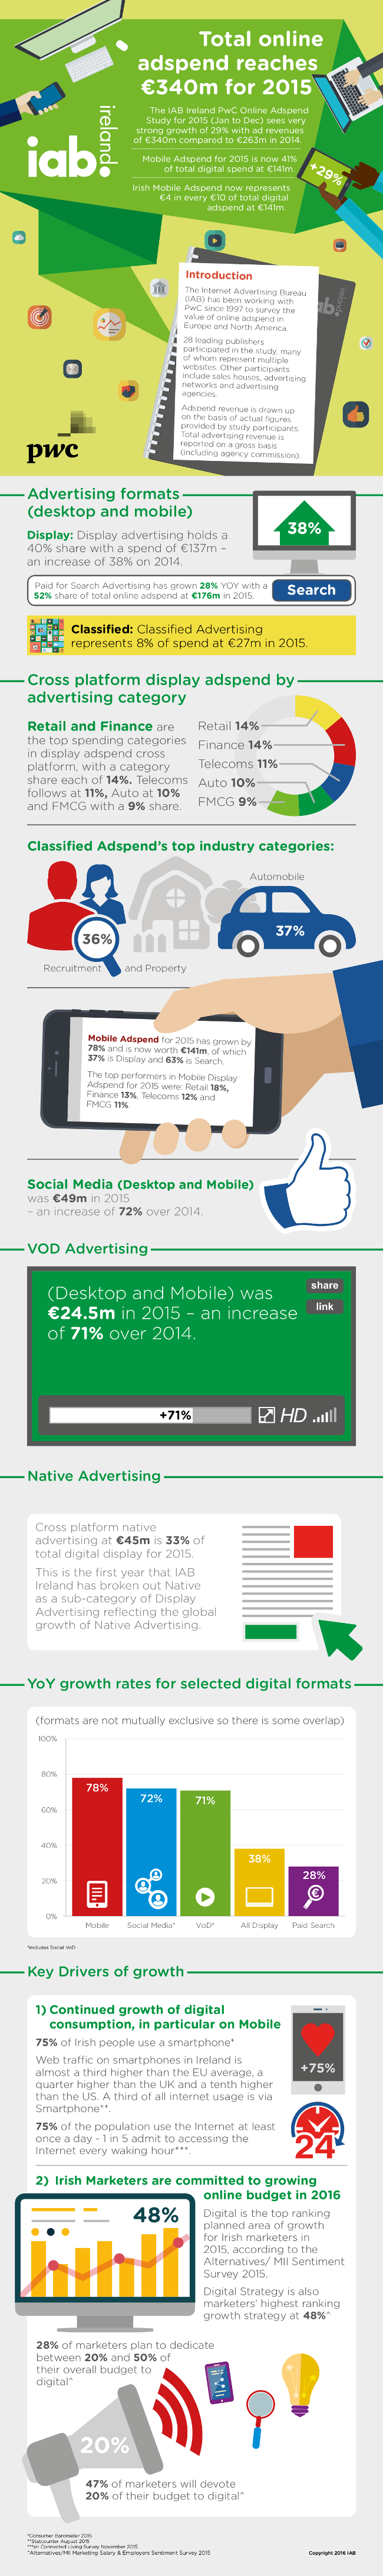 Ad_Spend_Ireland_2015_Infographic